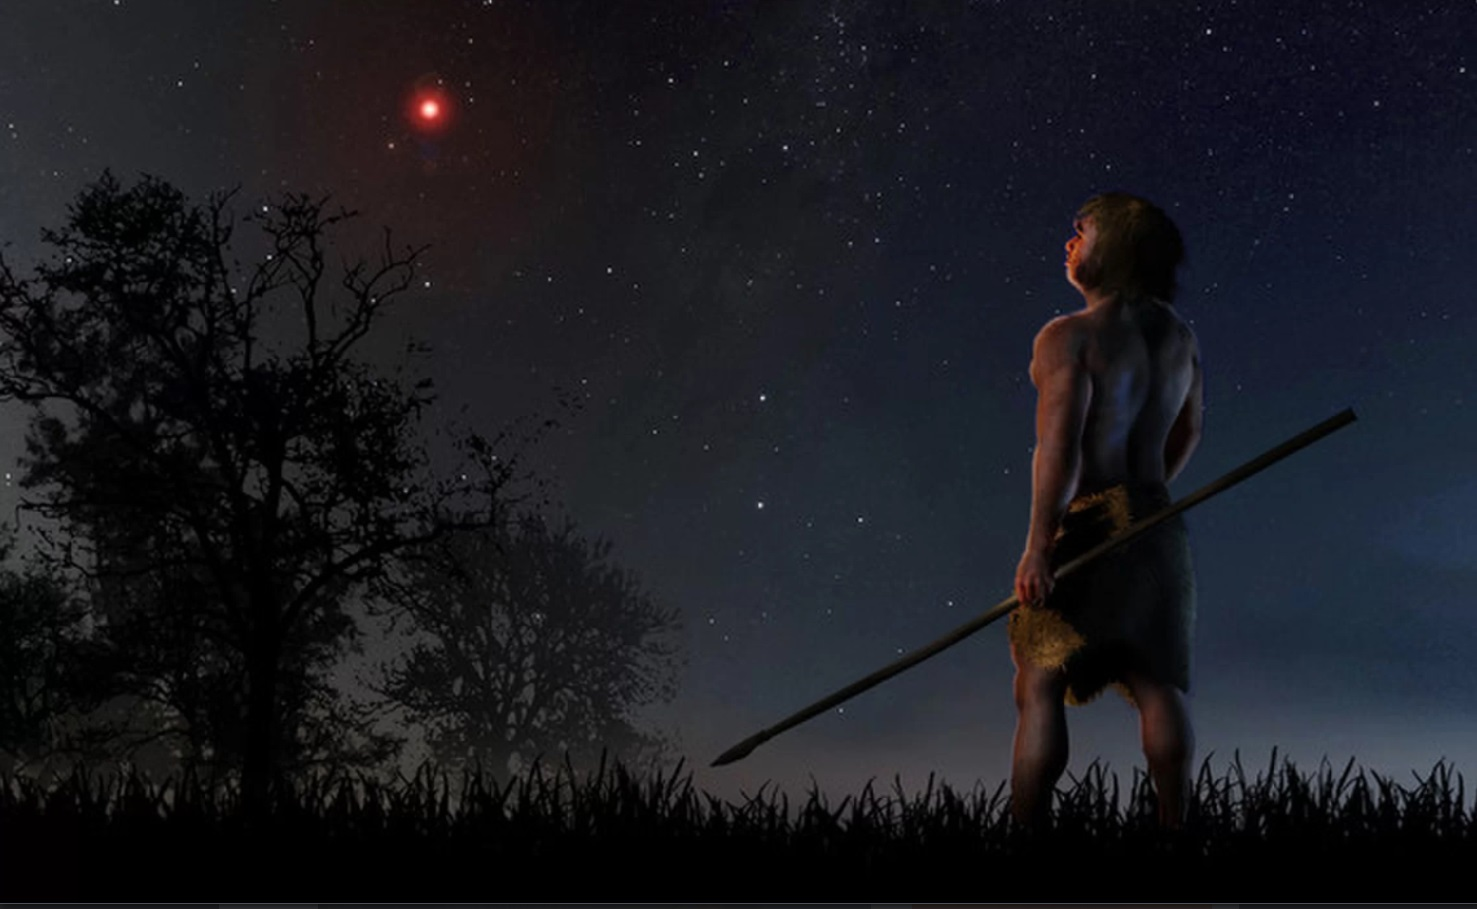 Neanderthal looking at the sky